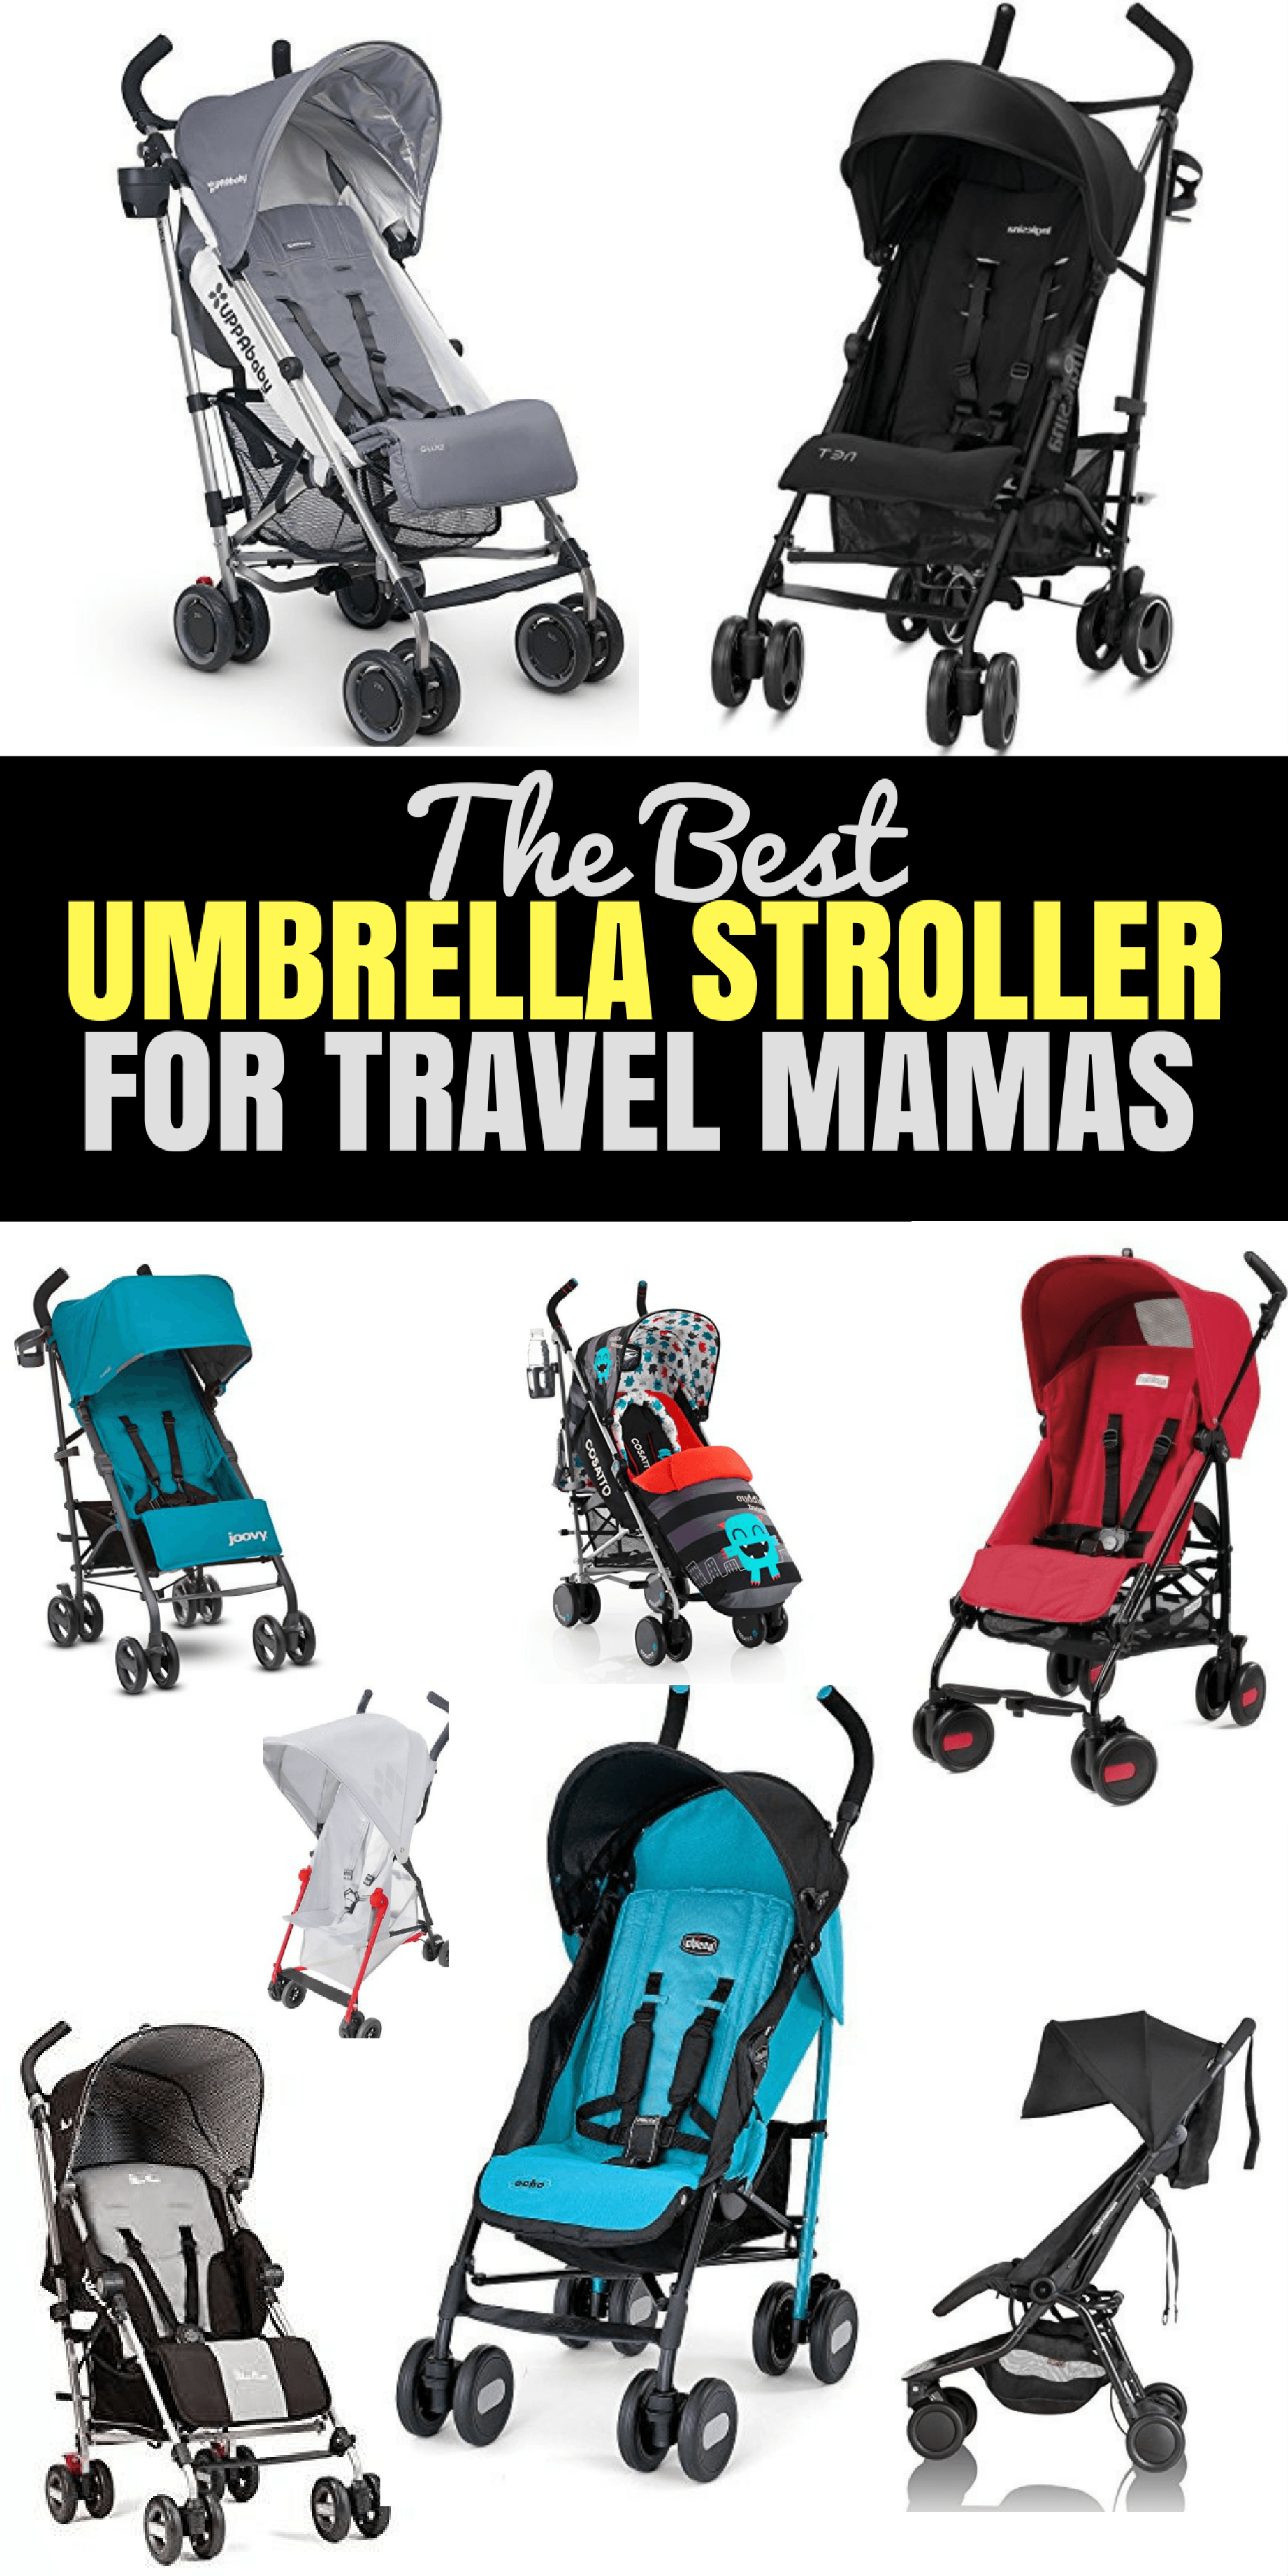 Making sure you get all the right kids travel gear for your travels is vital. Let's start with the best umbrella stroller for travel reviews.